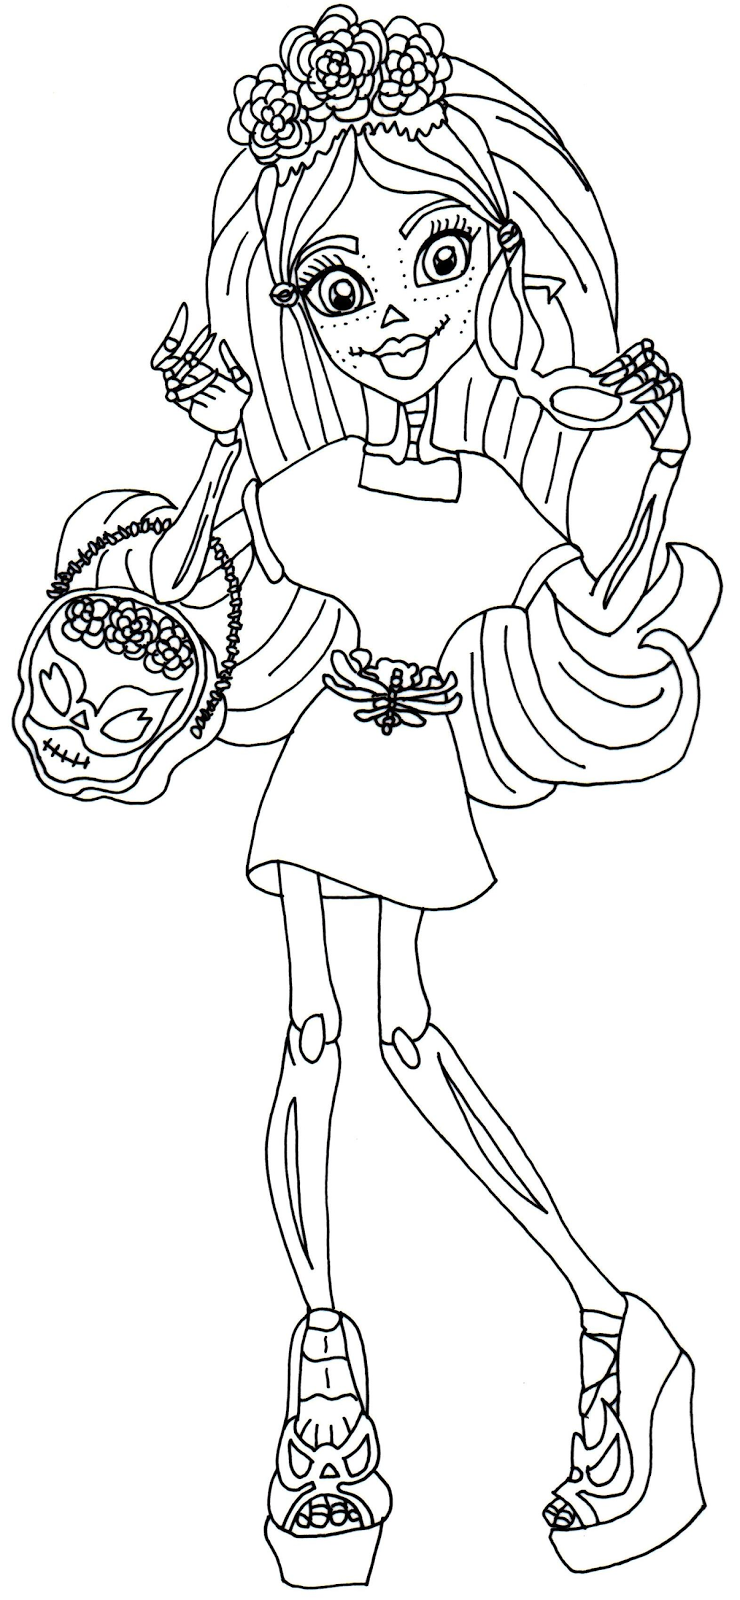 Free Printable Monster High Coloring Pages April 2014 Monster Coloring Pages Coloring Pages Colouring Pages